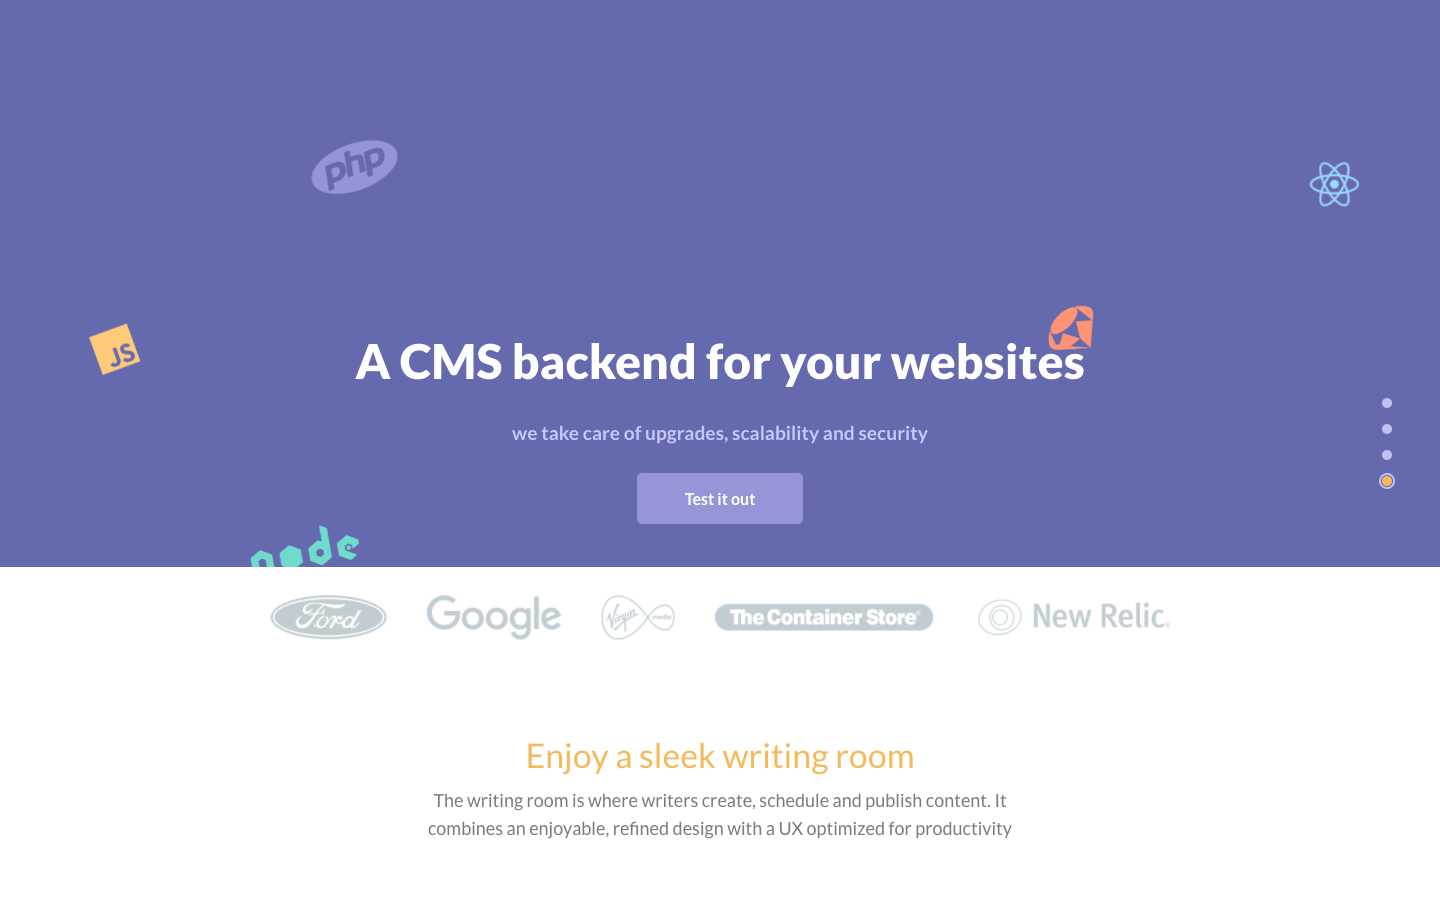 A CMS backend for your websites